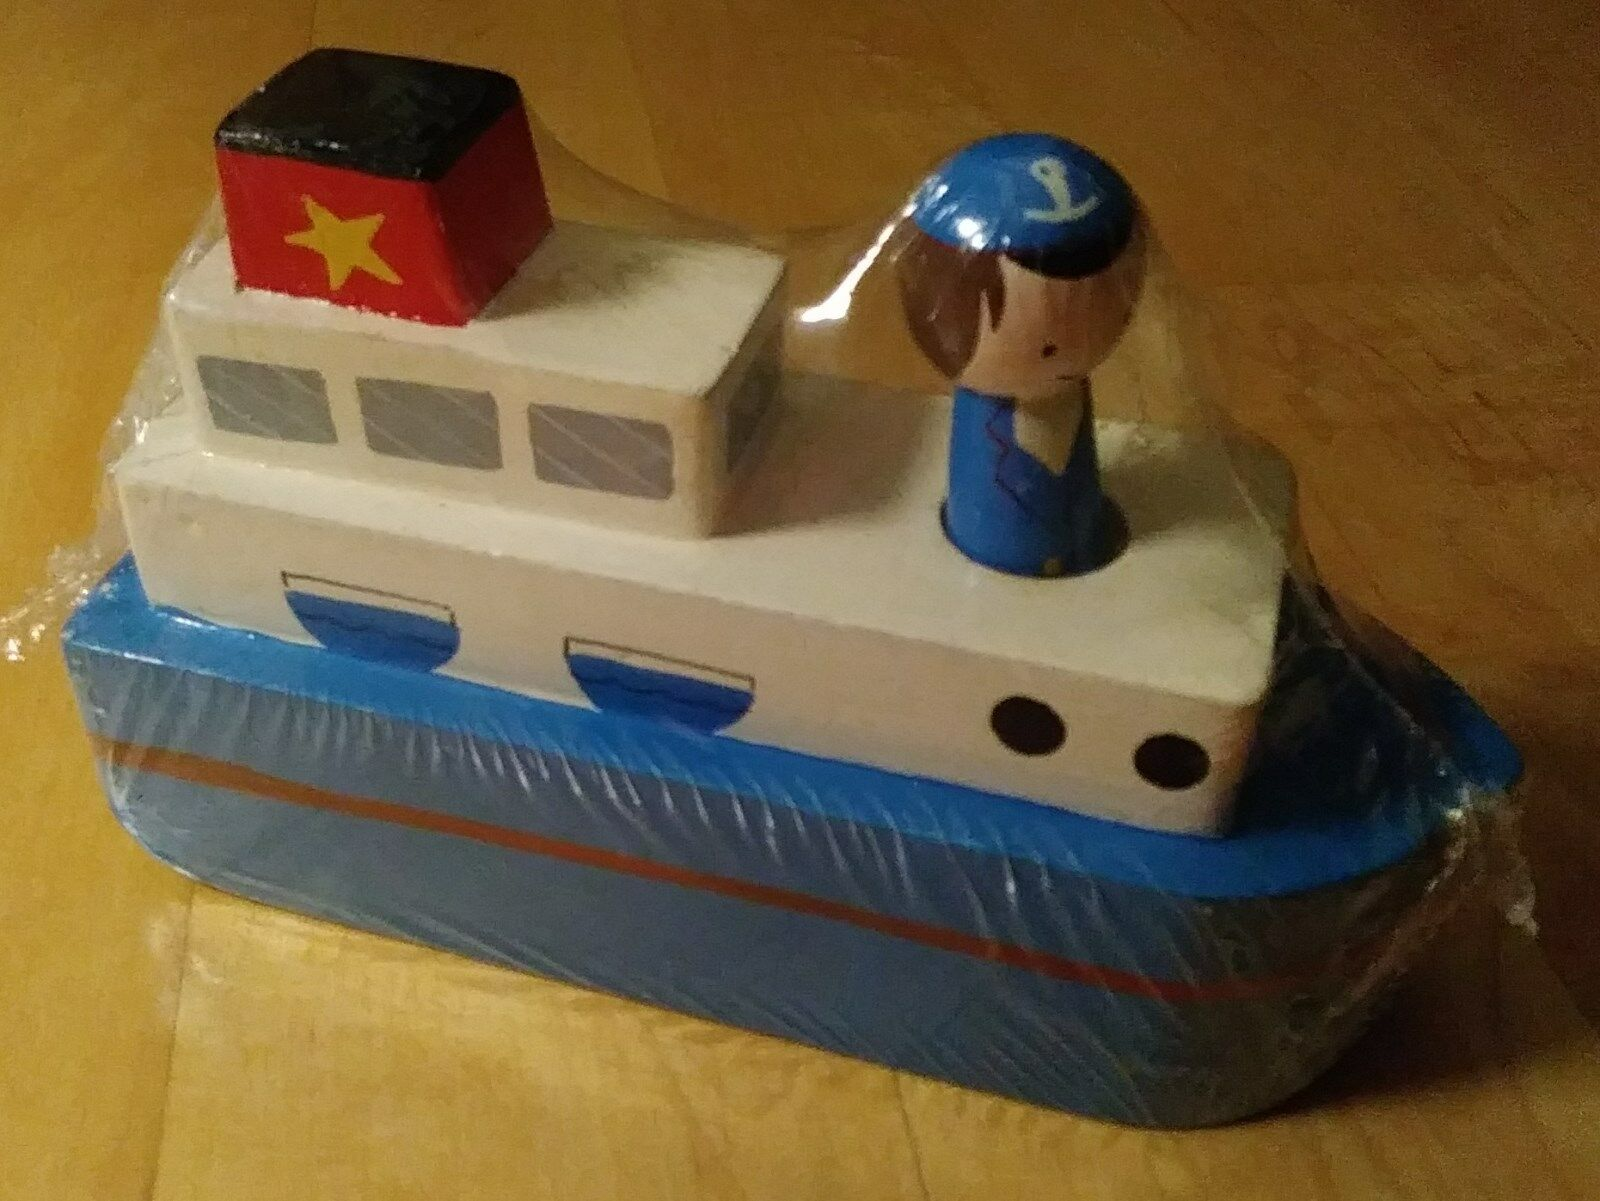 Wooden Toy Boat   Ship by Pier 1 Imports - 2 pieces - NEW - Rare - Classic